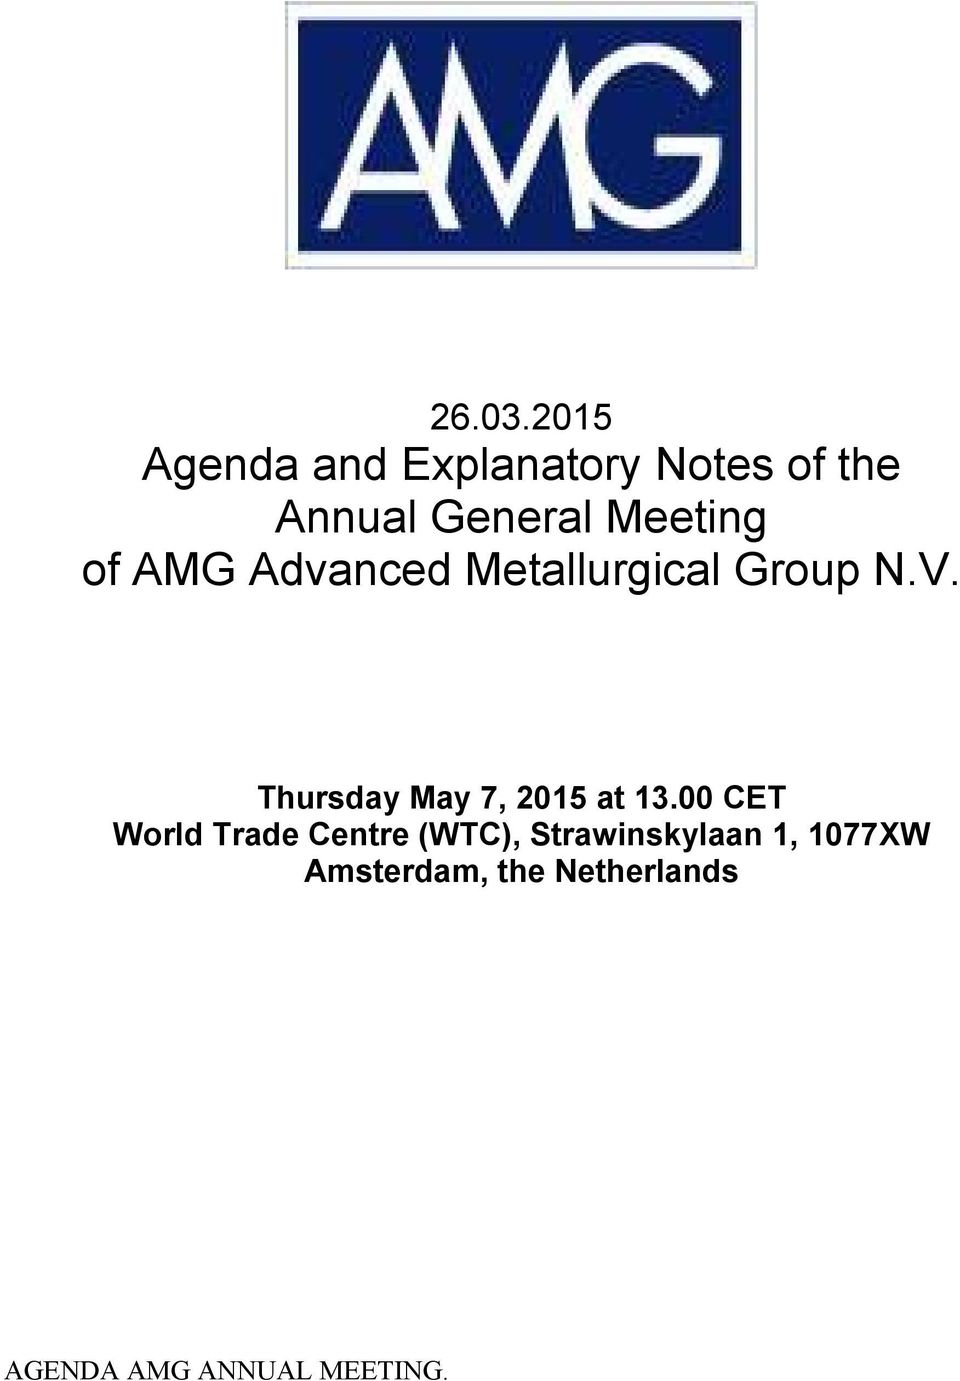 Meeting of AMG Advanced Metallurgical Group N.V.